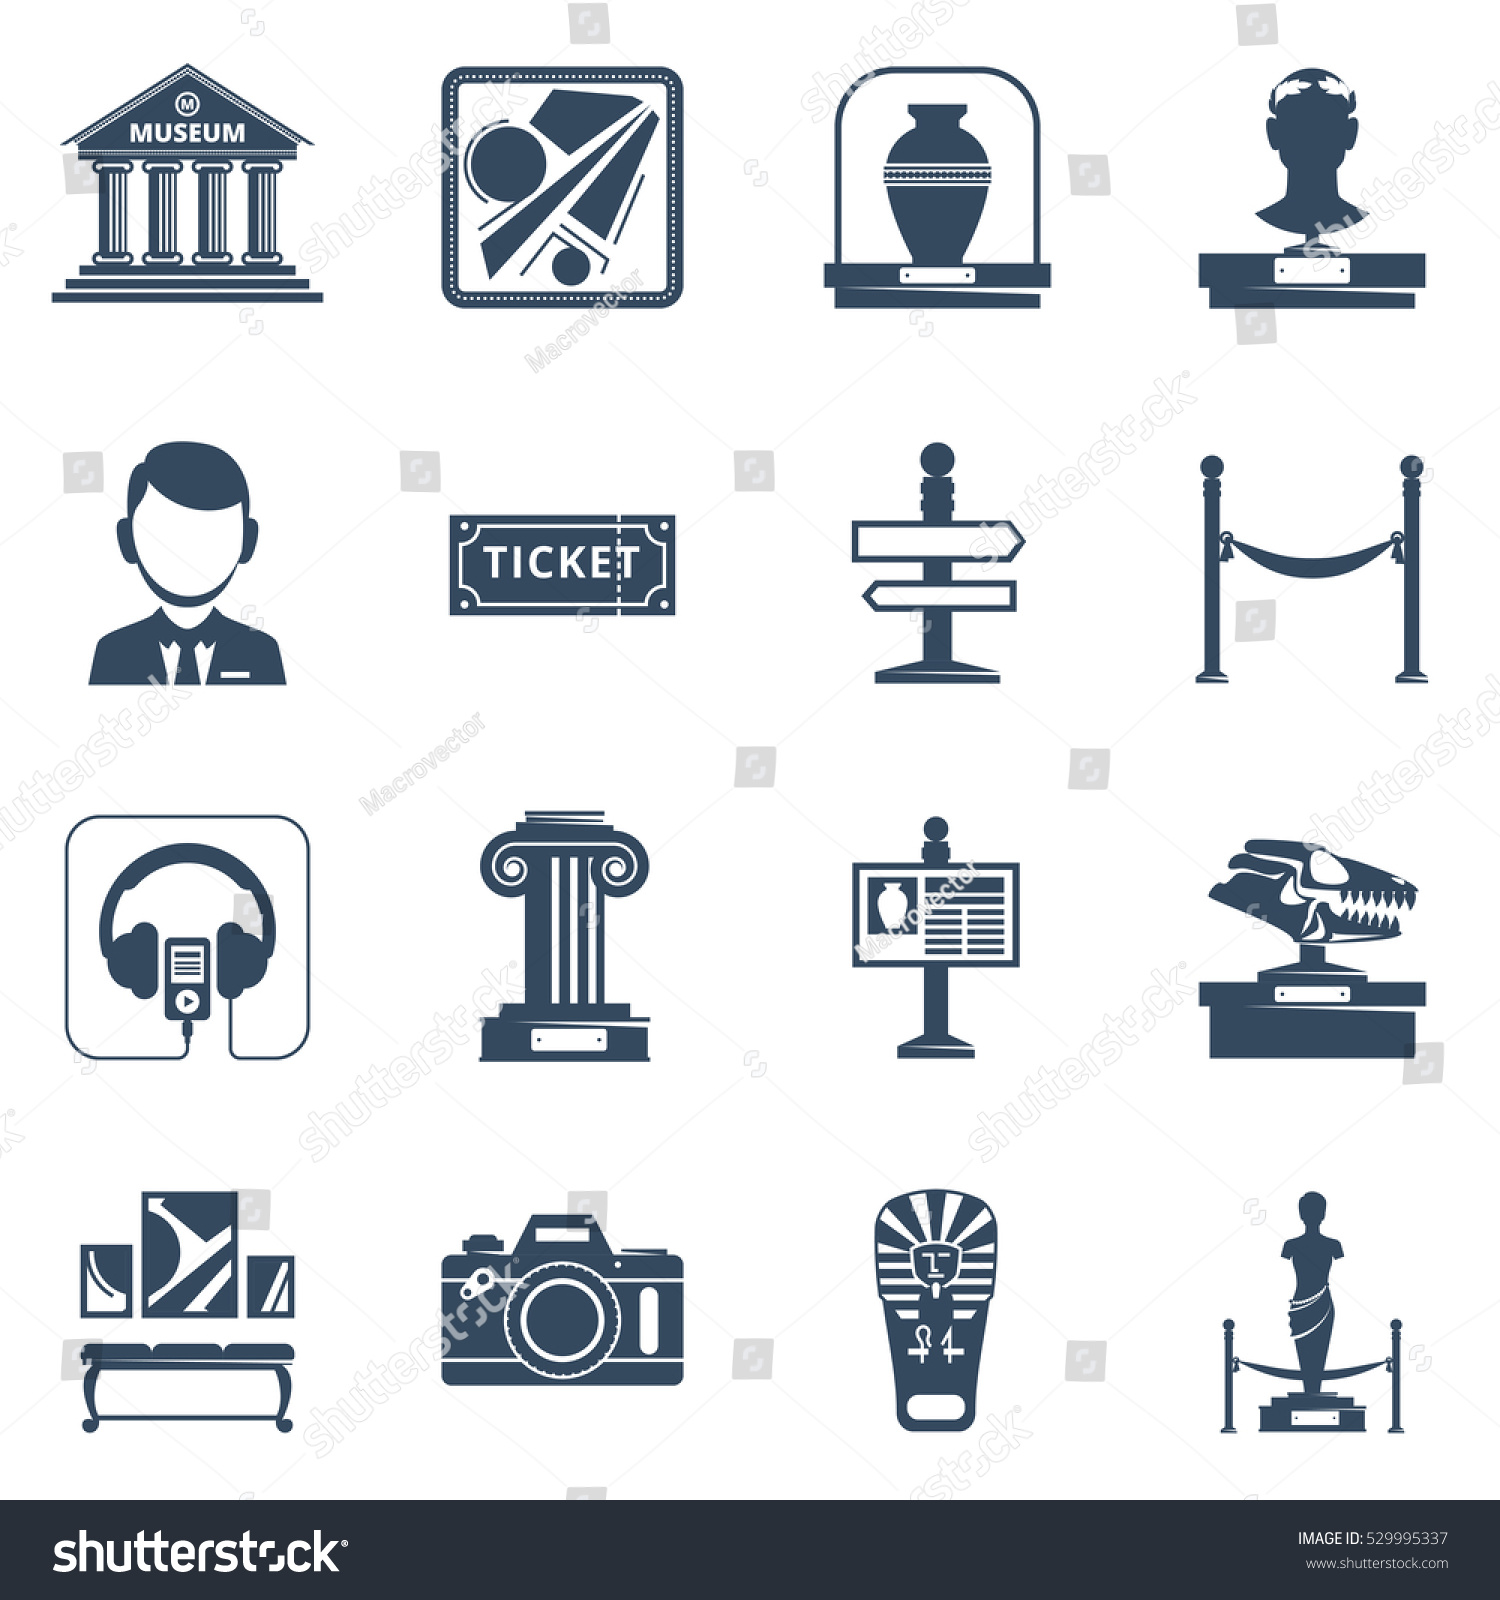 Museum flat icon set black silhouette stock illustration 529995337 museum flat icon set with black silhouette symbols of museum interior exhibit and special signs illustration biocorpaavc Choice Image